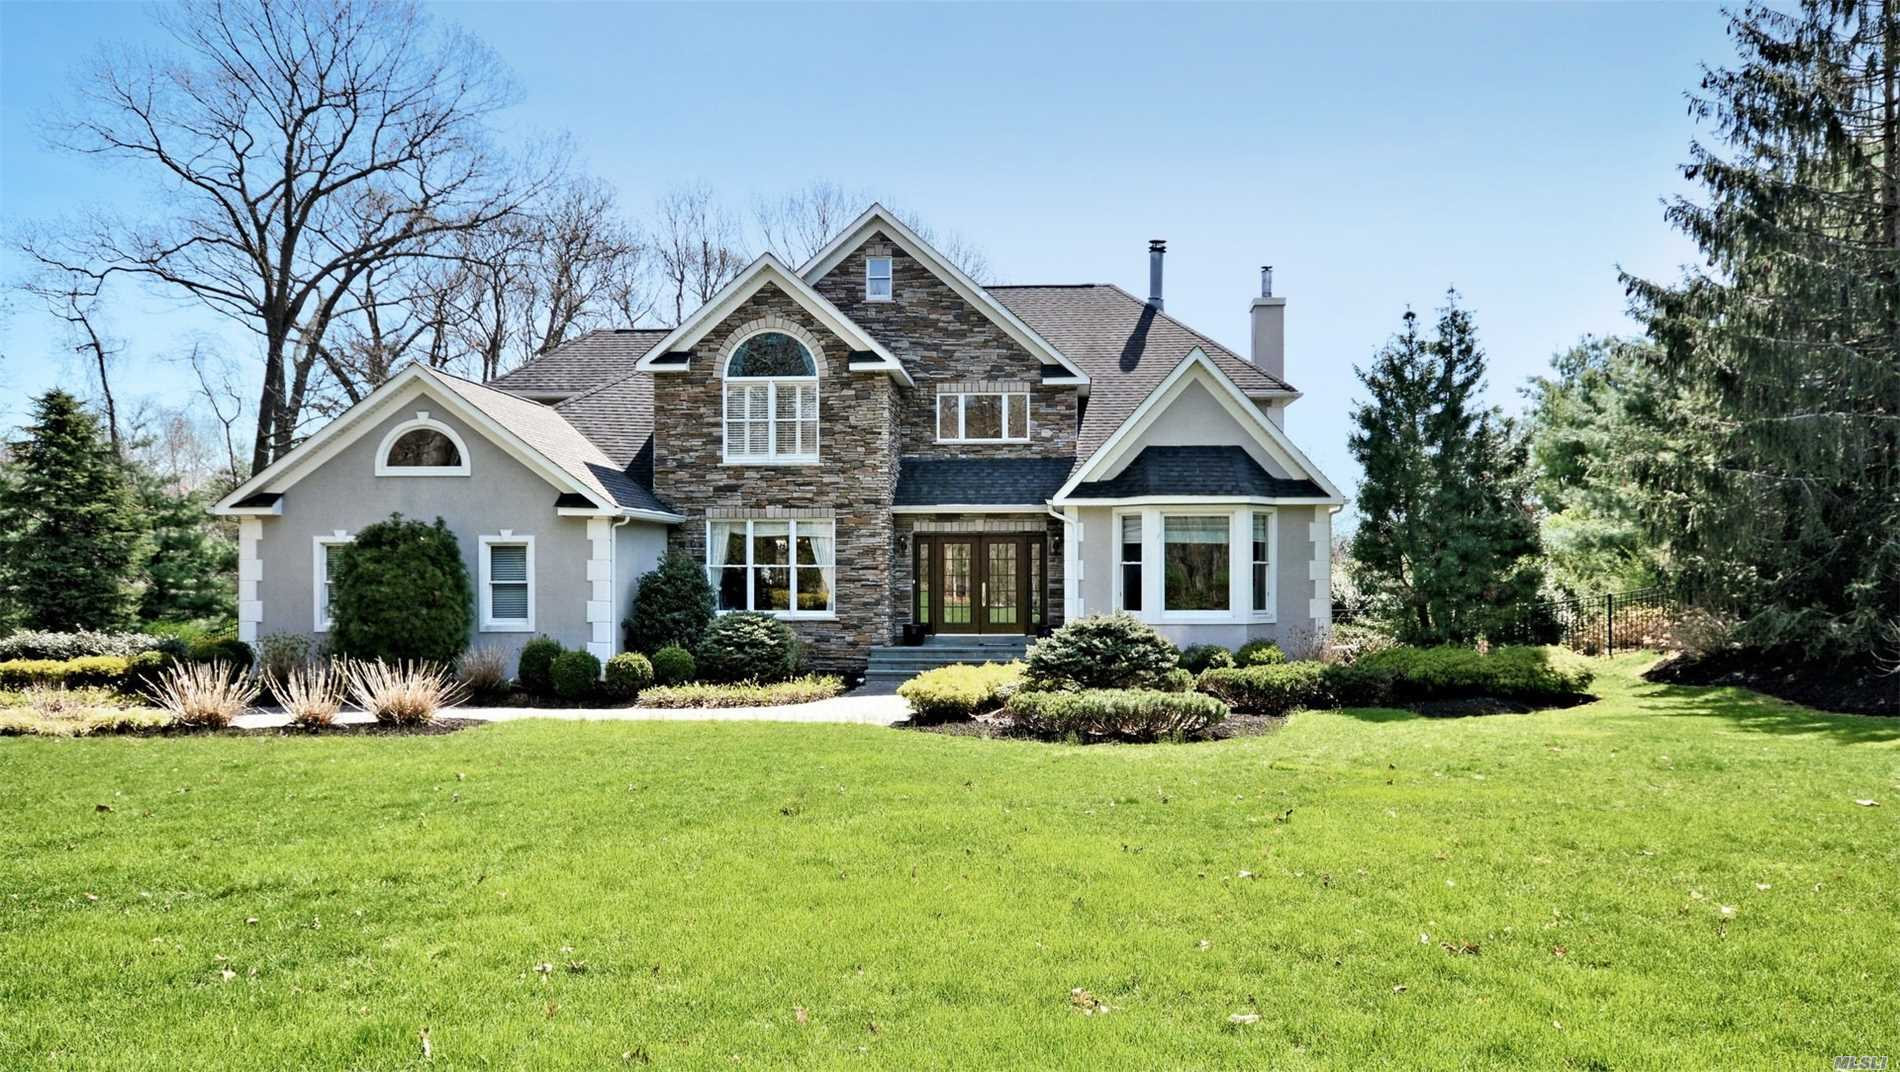 This Exquisite Home Is Beautifully Placed In A Private Country Club Setting With A Salt Water In Ground Pool, Patios, Porches And Decks! The Interior Is 3 Floors Of Living Space With Plenty Of Room For Extended Family With A Walk Out Lower Level With a Summer Kitchen! Wood Floors, Dual Fireplace, Large Rooms, Walk In Closets, Updated Kitchen, Steam Shower, Bubble Jet Tub And More! A Must See!